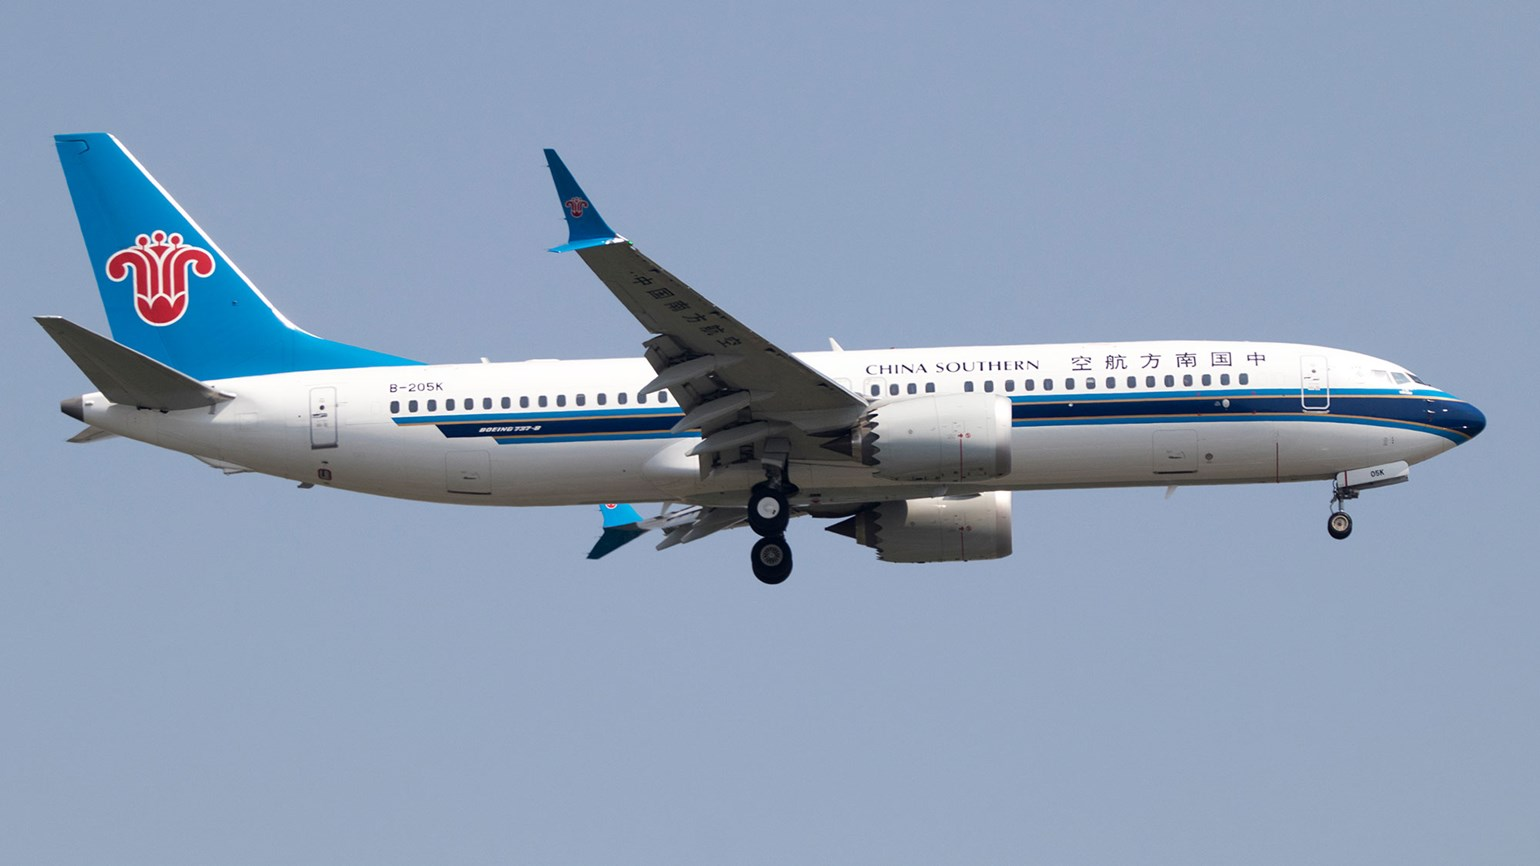 China Southern Boeing 737 Max 8